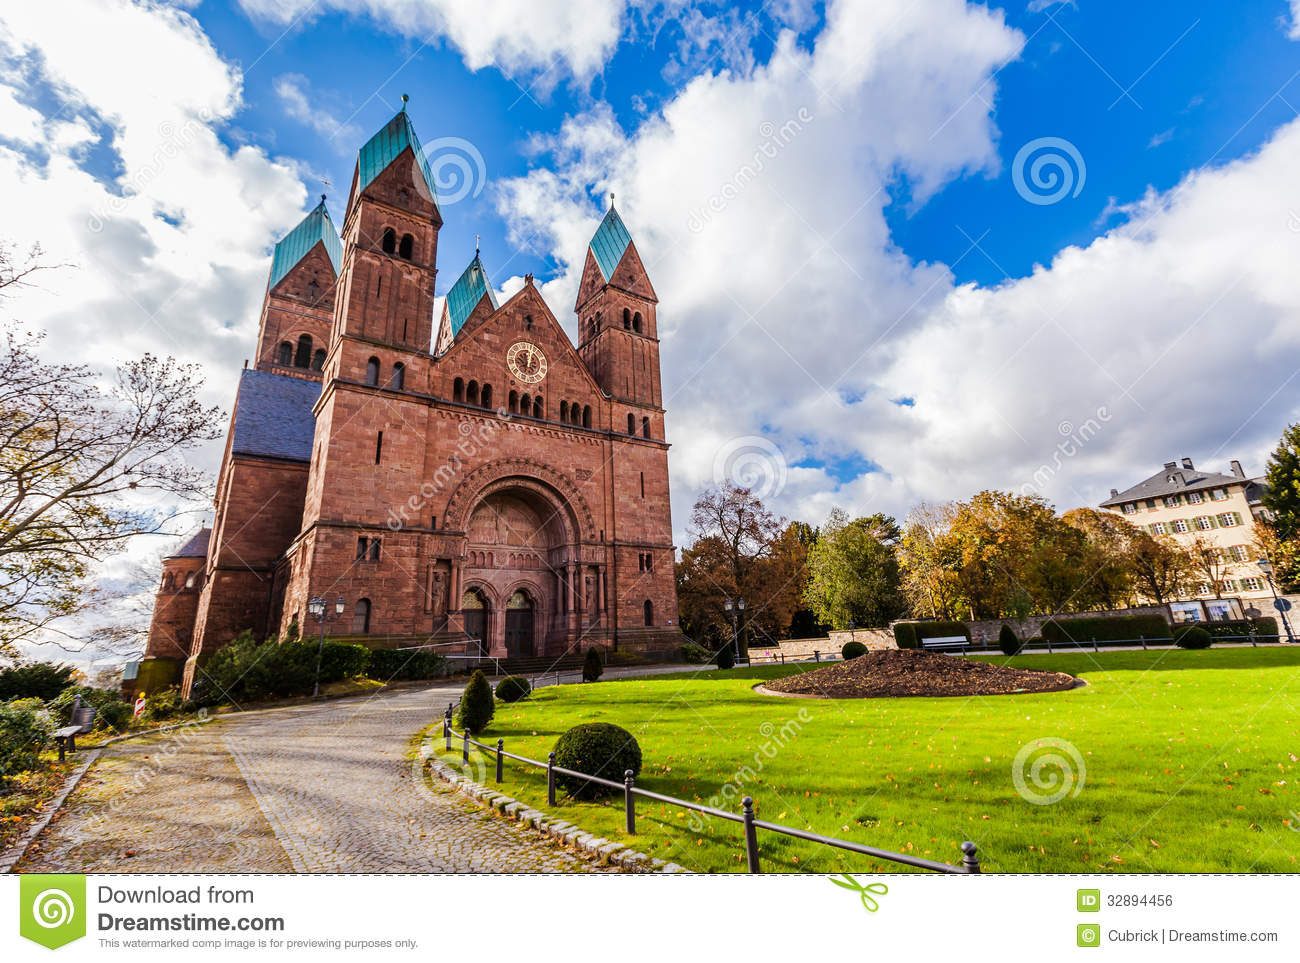 Church In Bad Homburg Royalty Free Stock Image.